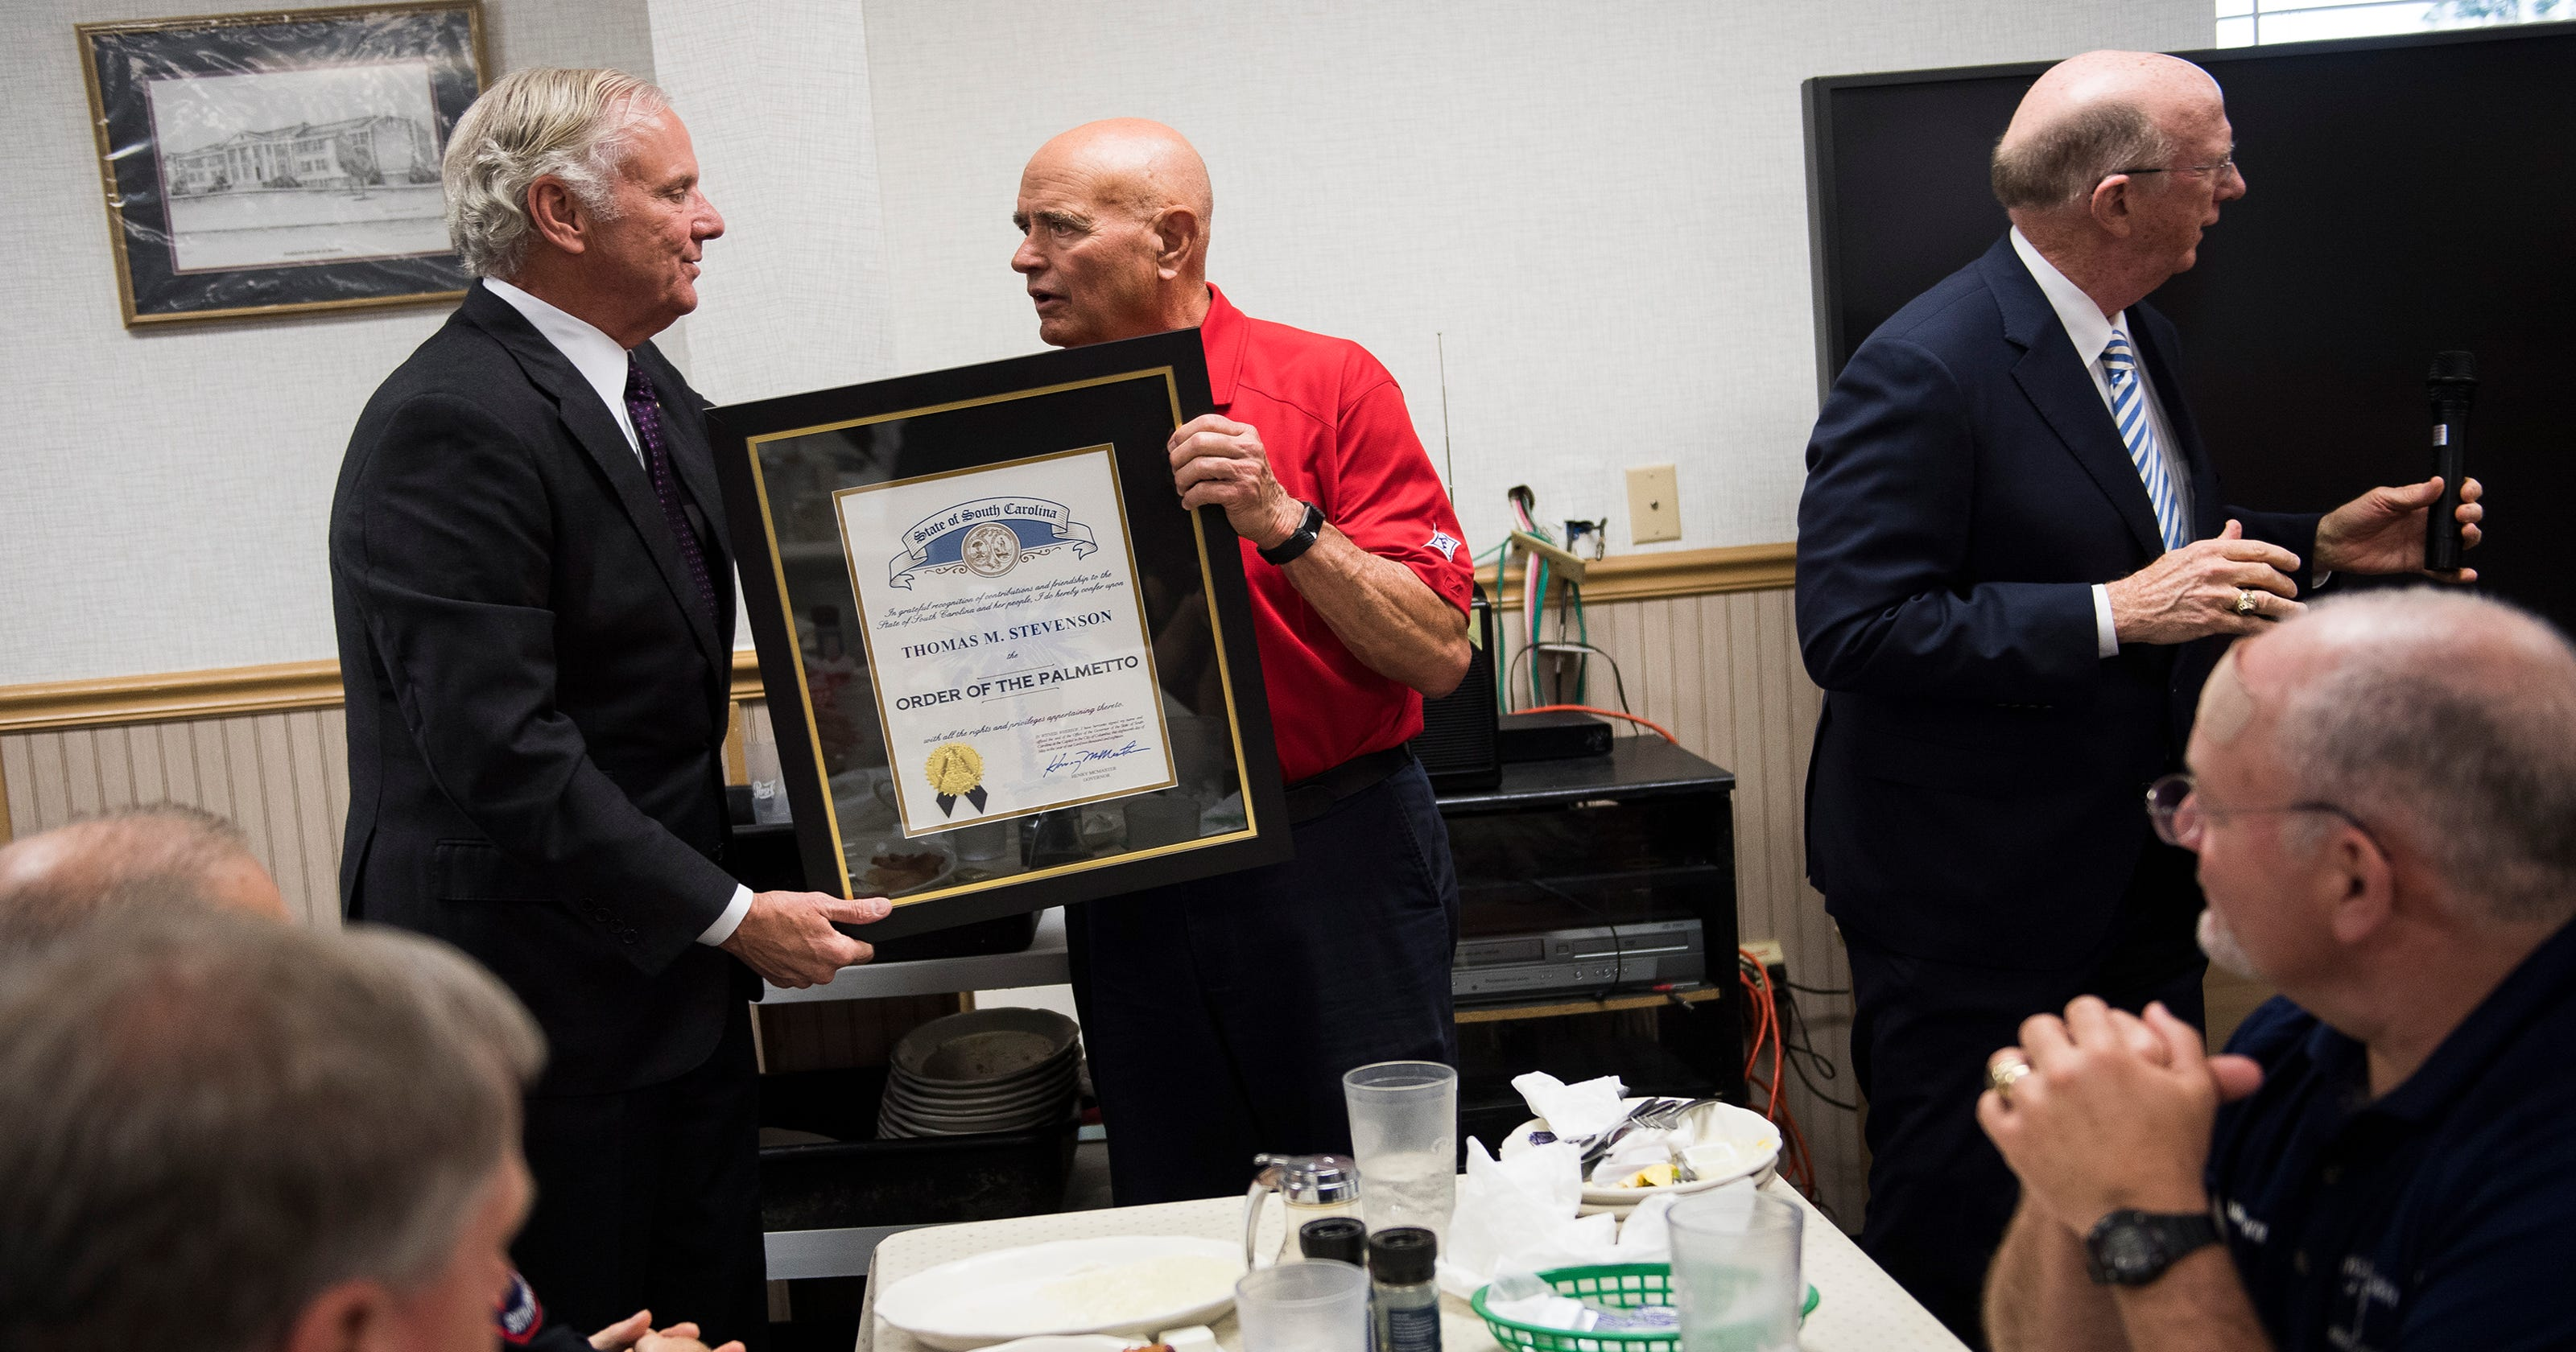 McMaster surprises Tommy's Country Ham House owner with ...